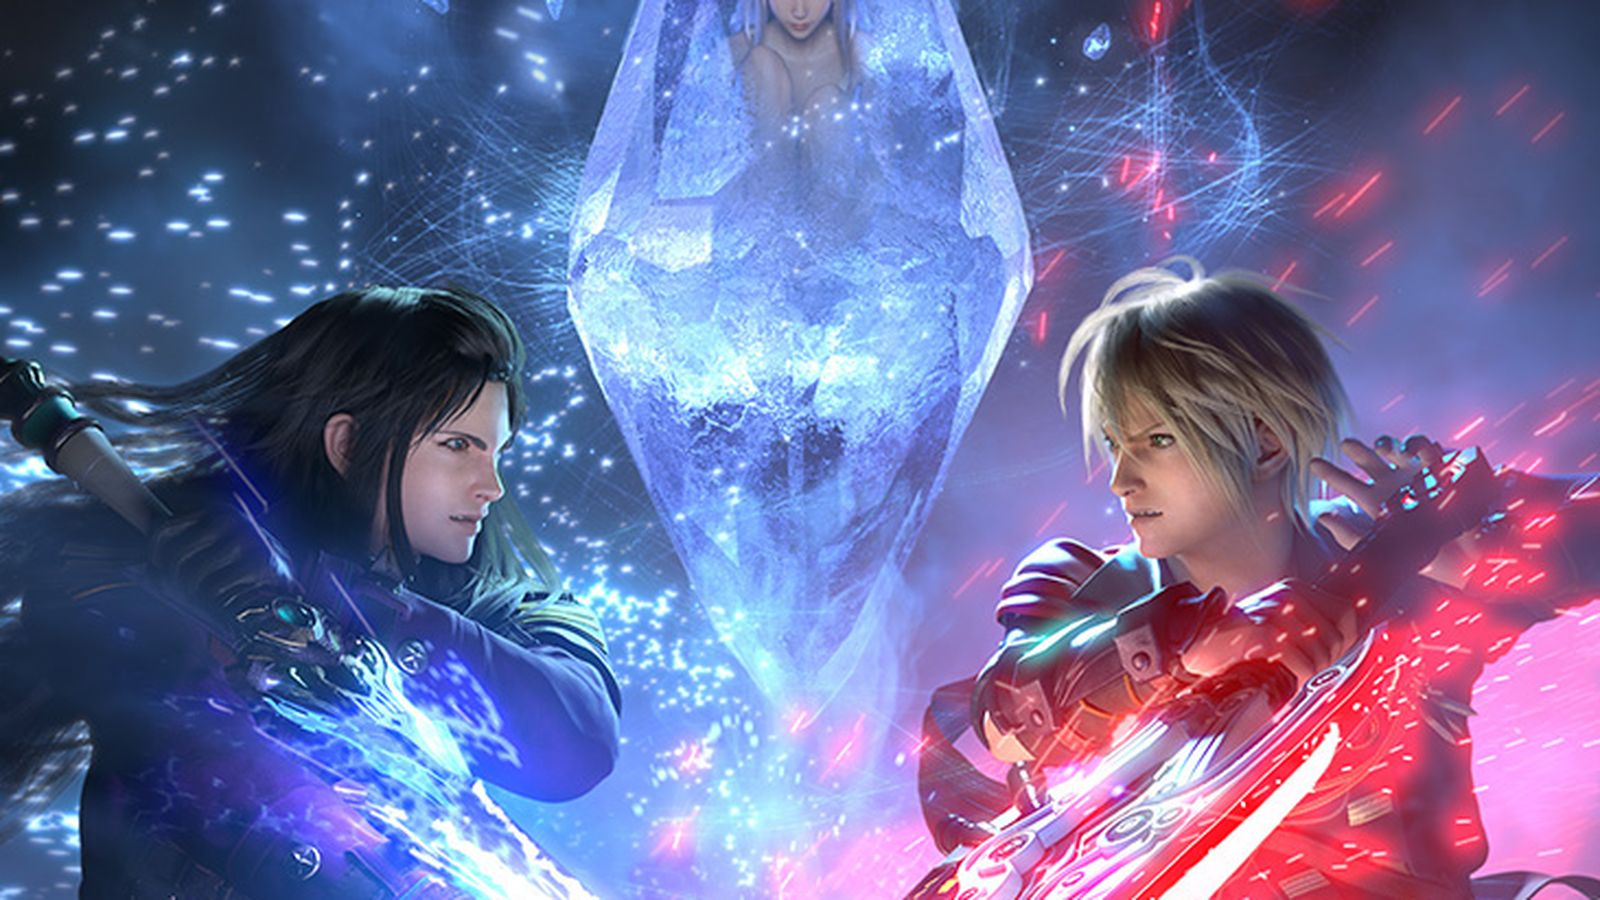 Modojo | Final Fantasy: Brave Exvius Update Brings New Story Arc And Esper